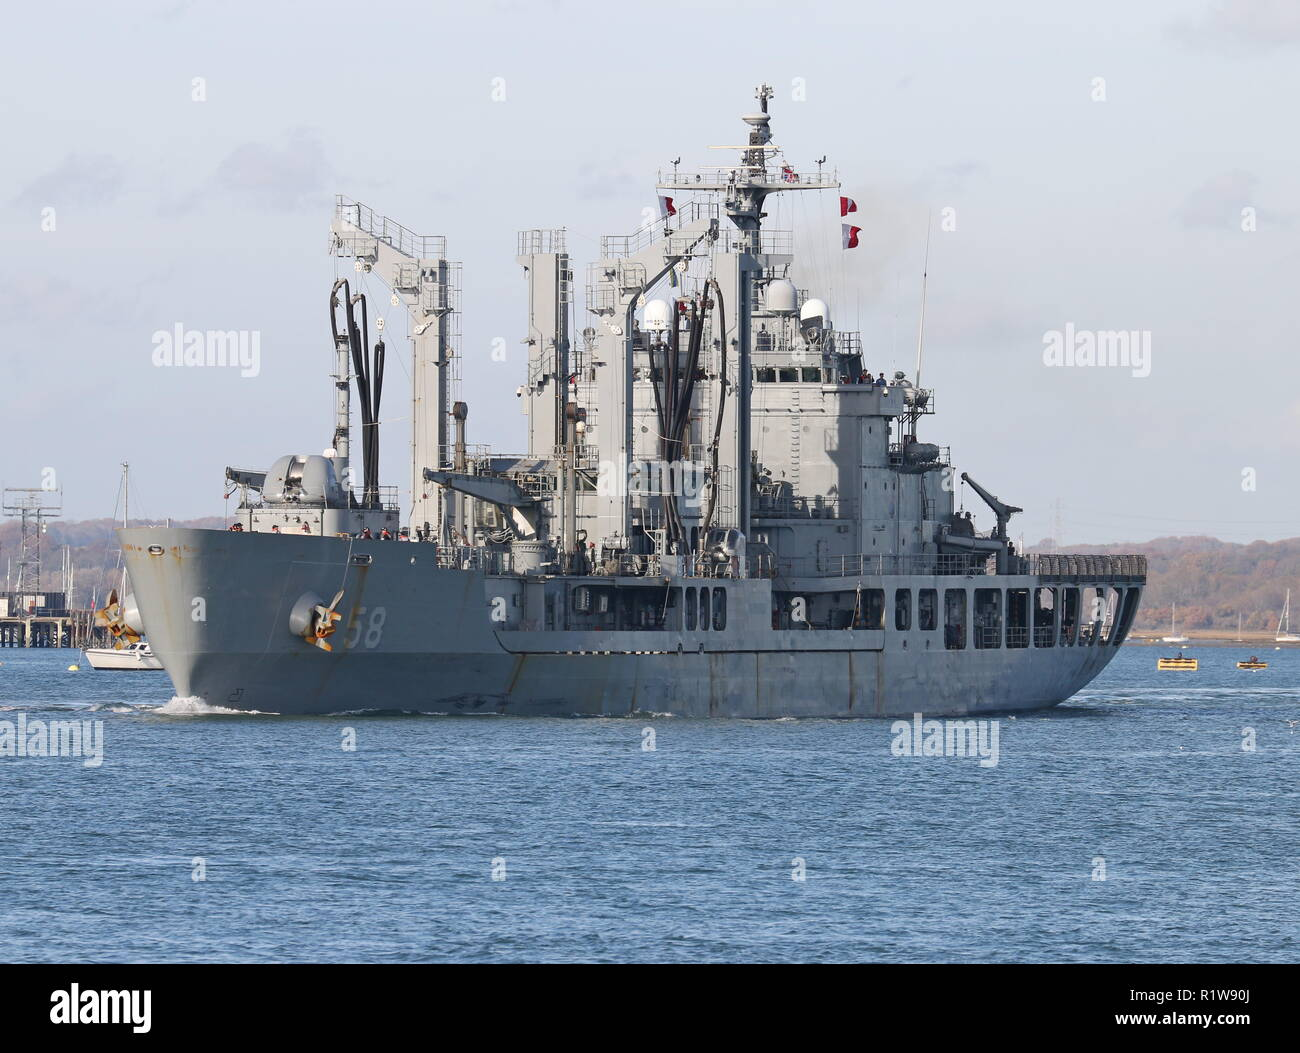 The Republic of Korea support ship Daocheong leaving Portsmouth Harbour, UK on 14th November 2018. Stock Photo